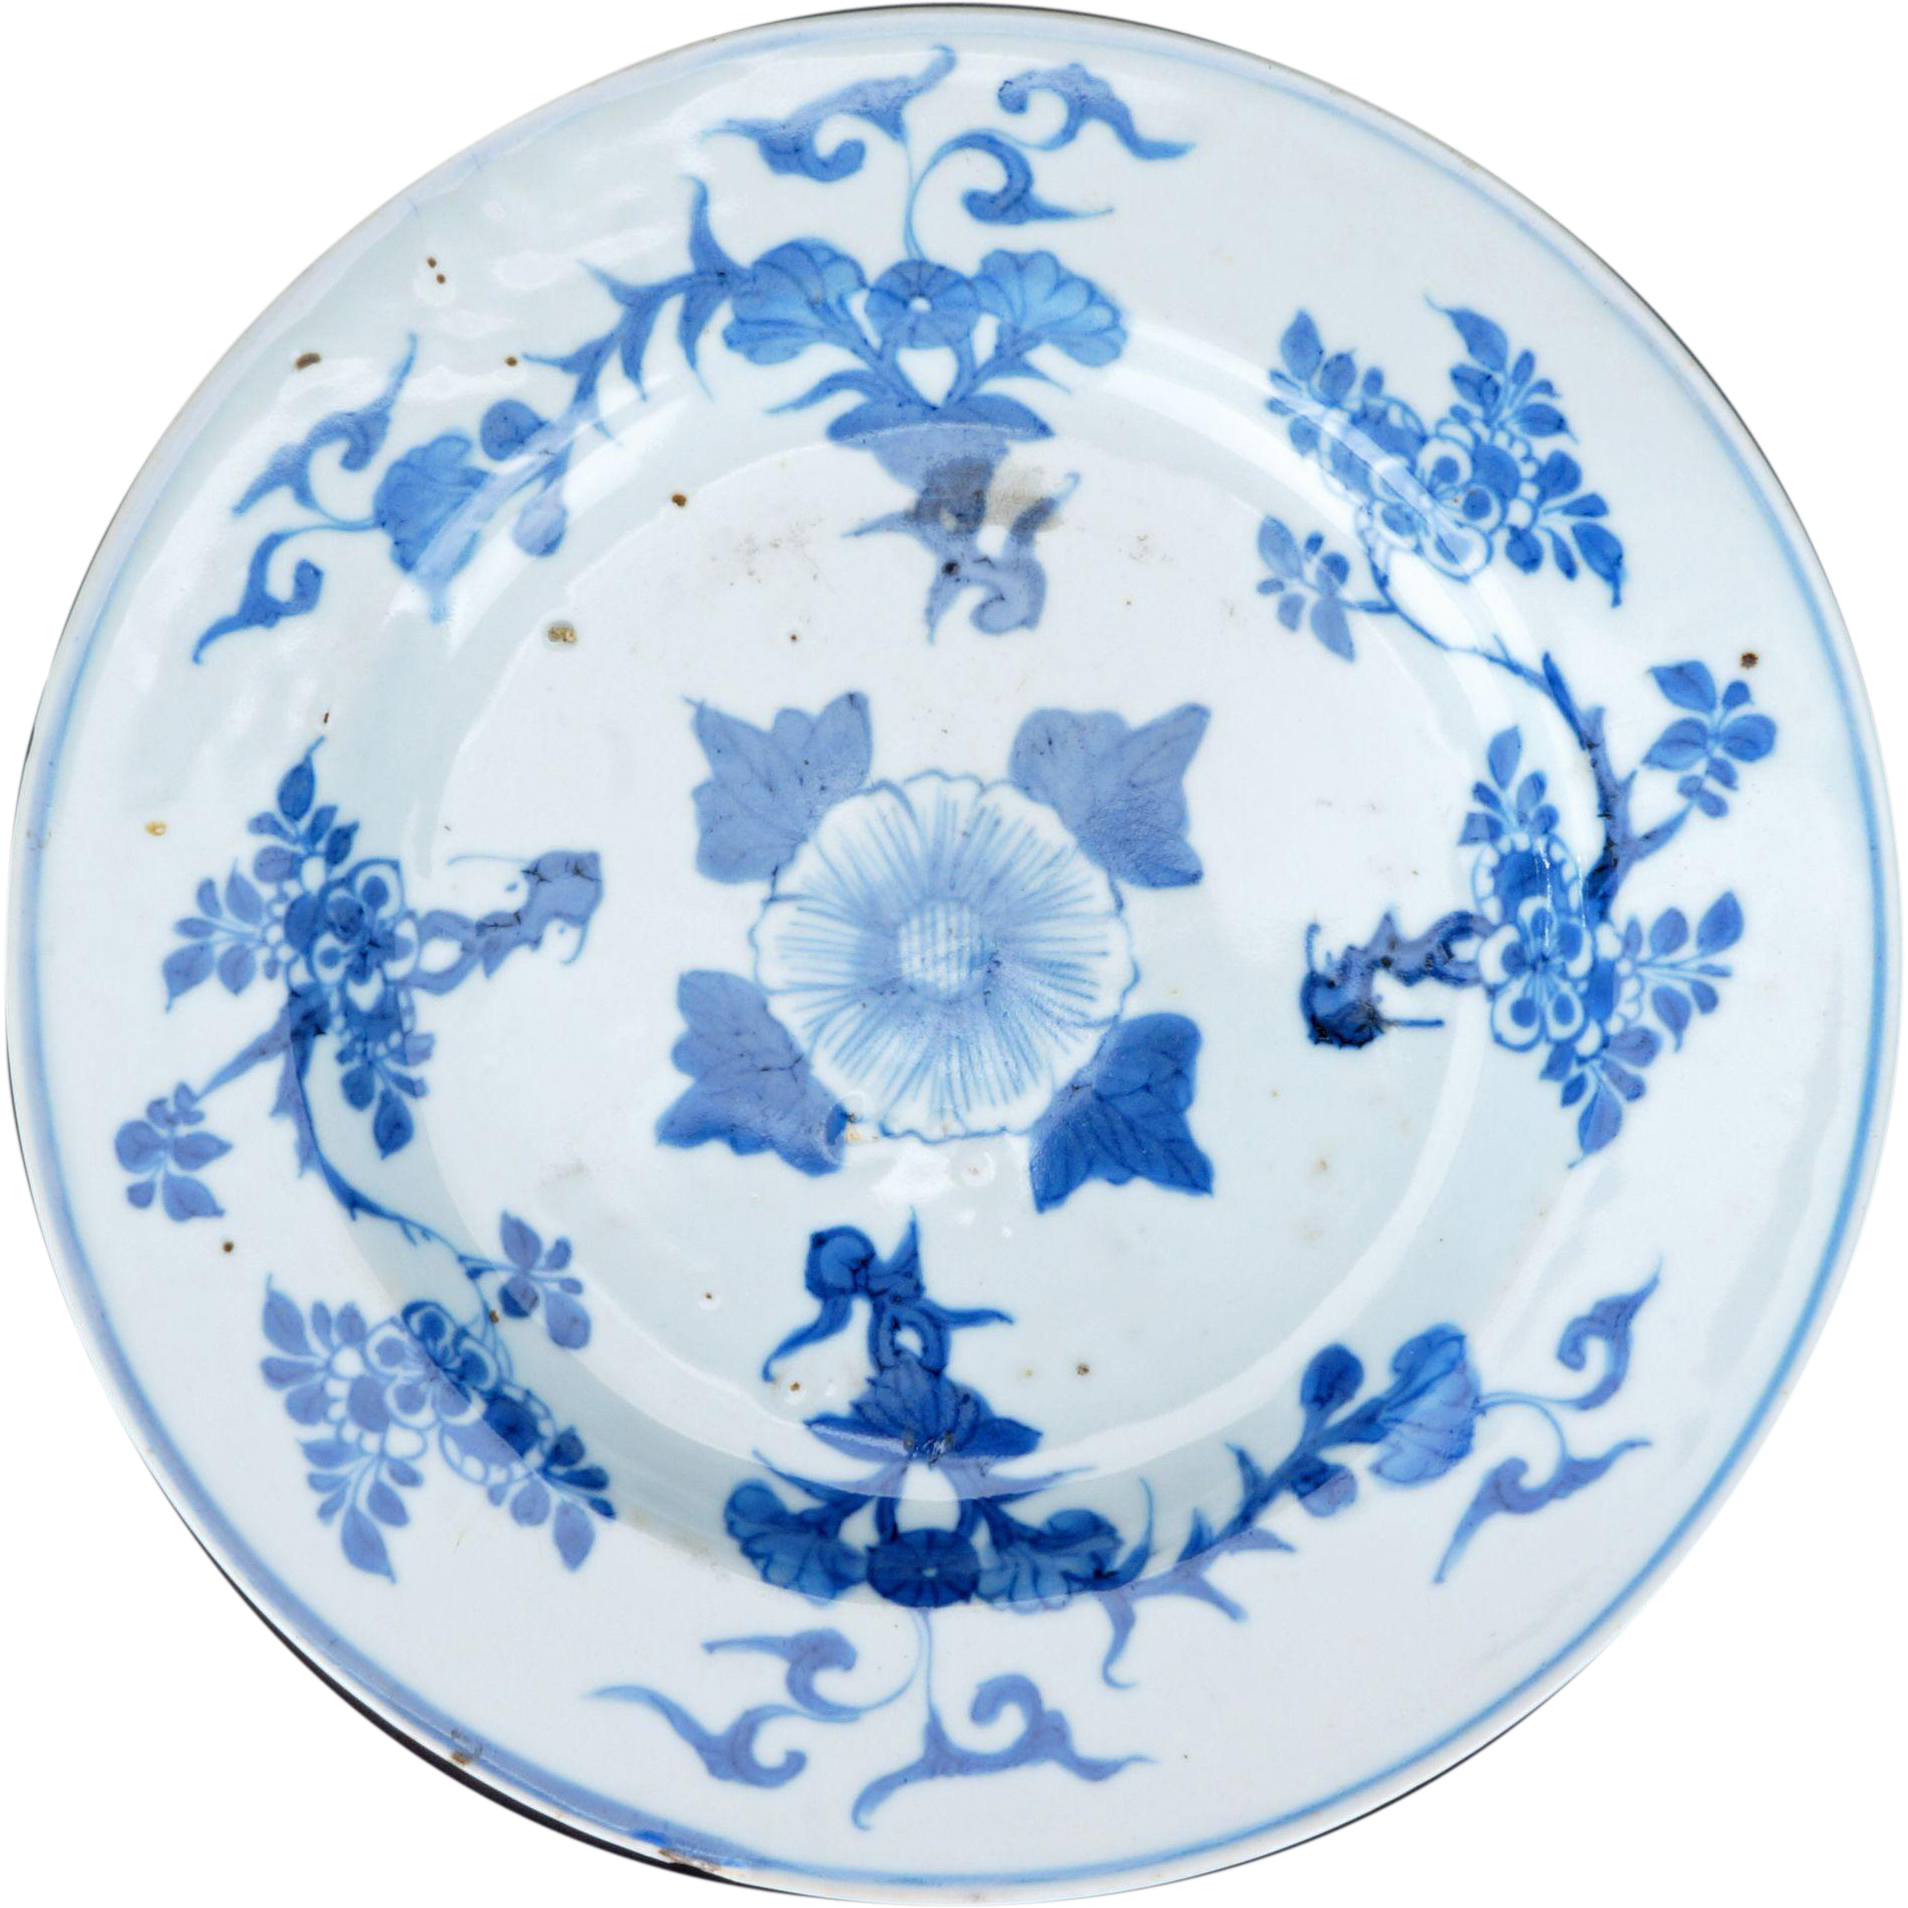 Chinese Kangxi blue and white porcelain plate with floral design 17th century